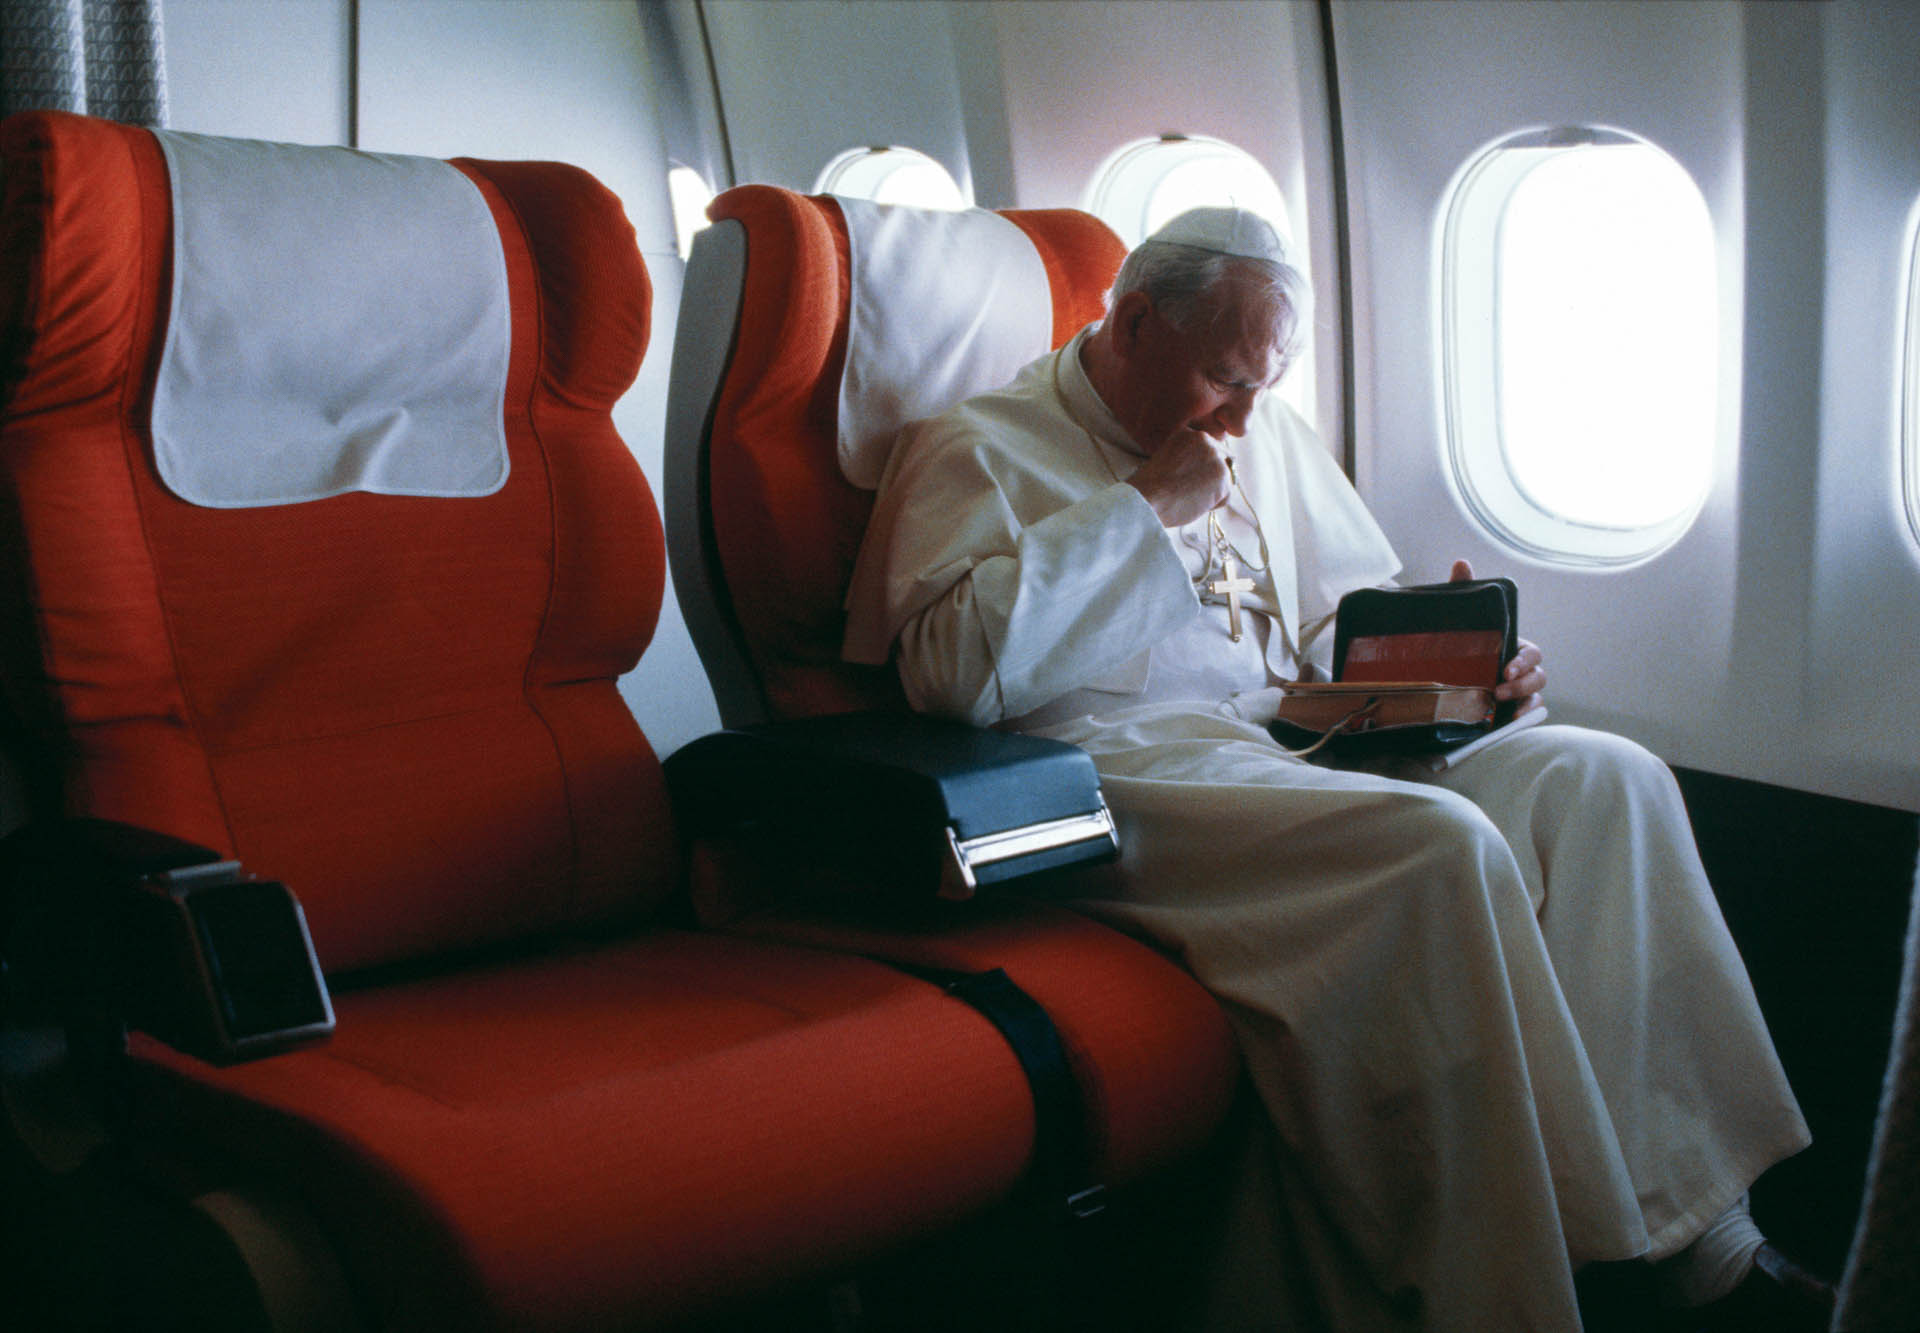 Argentina - June 1982 Pope John Paul II takes few moments to read the breviary in the special area prepared for him on long flights. Here coming back from Argentina.